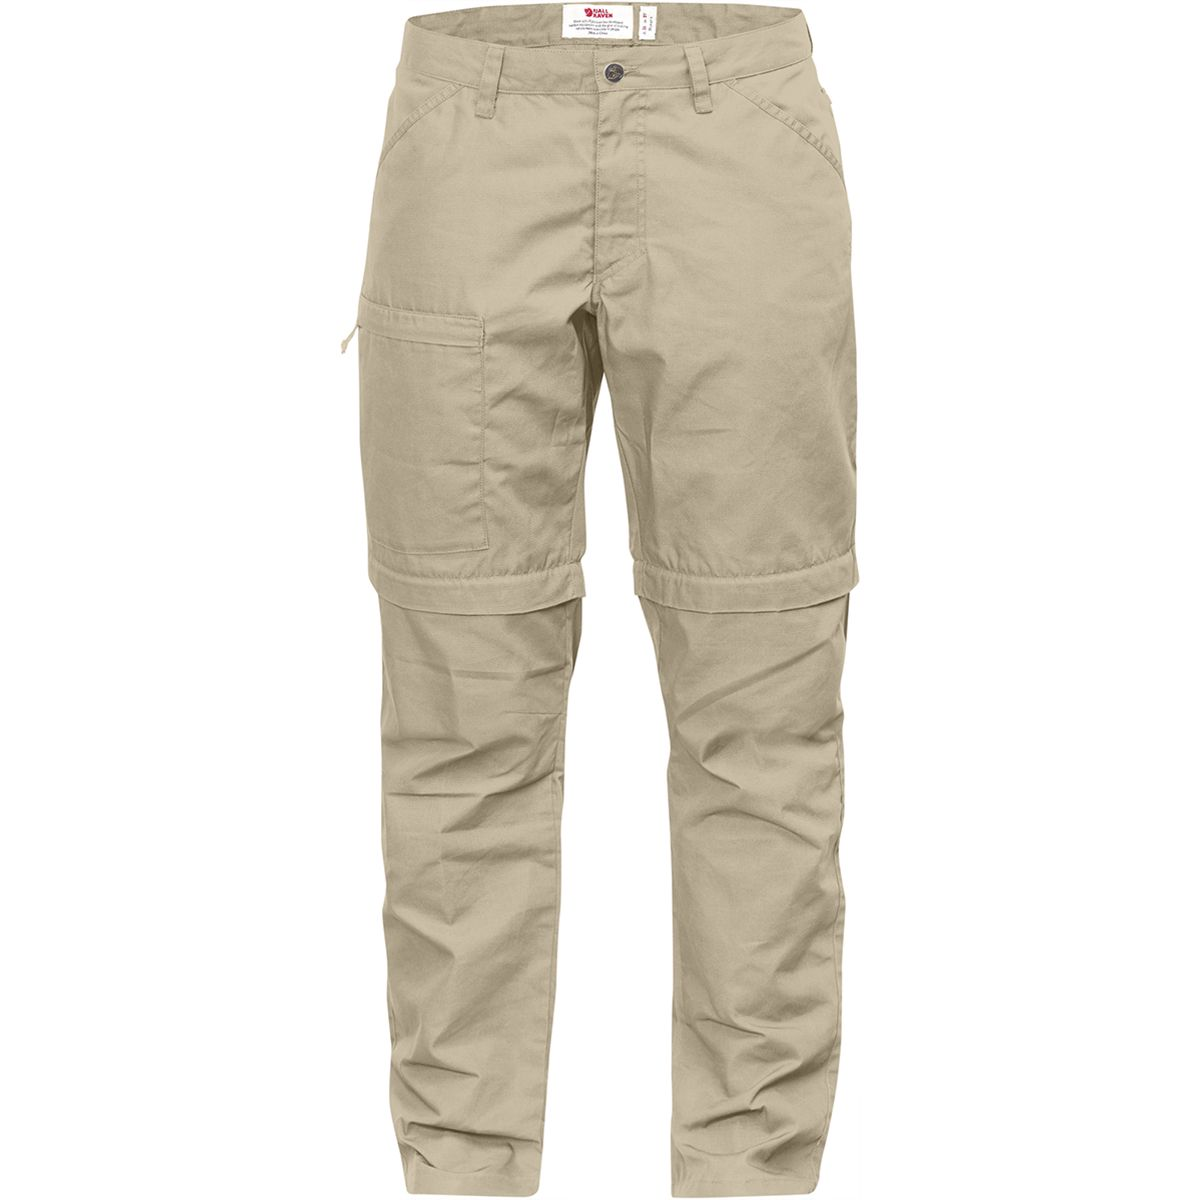 Fjällräven Damen High Coast Zip-Off Hose (Größe XS, Beige) | Zip-Hosen > Damen